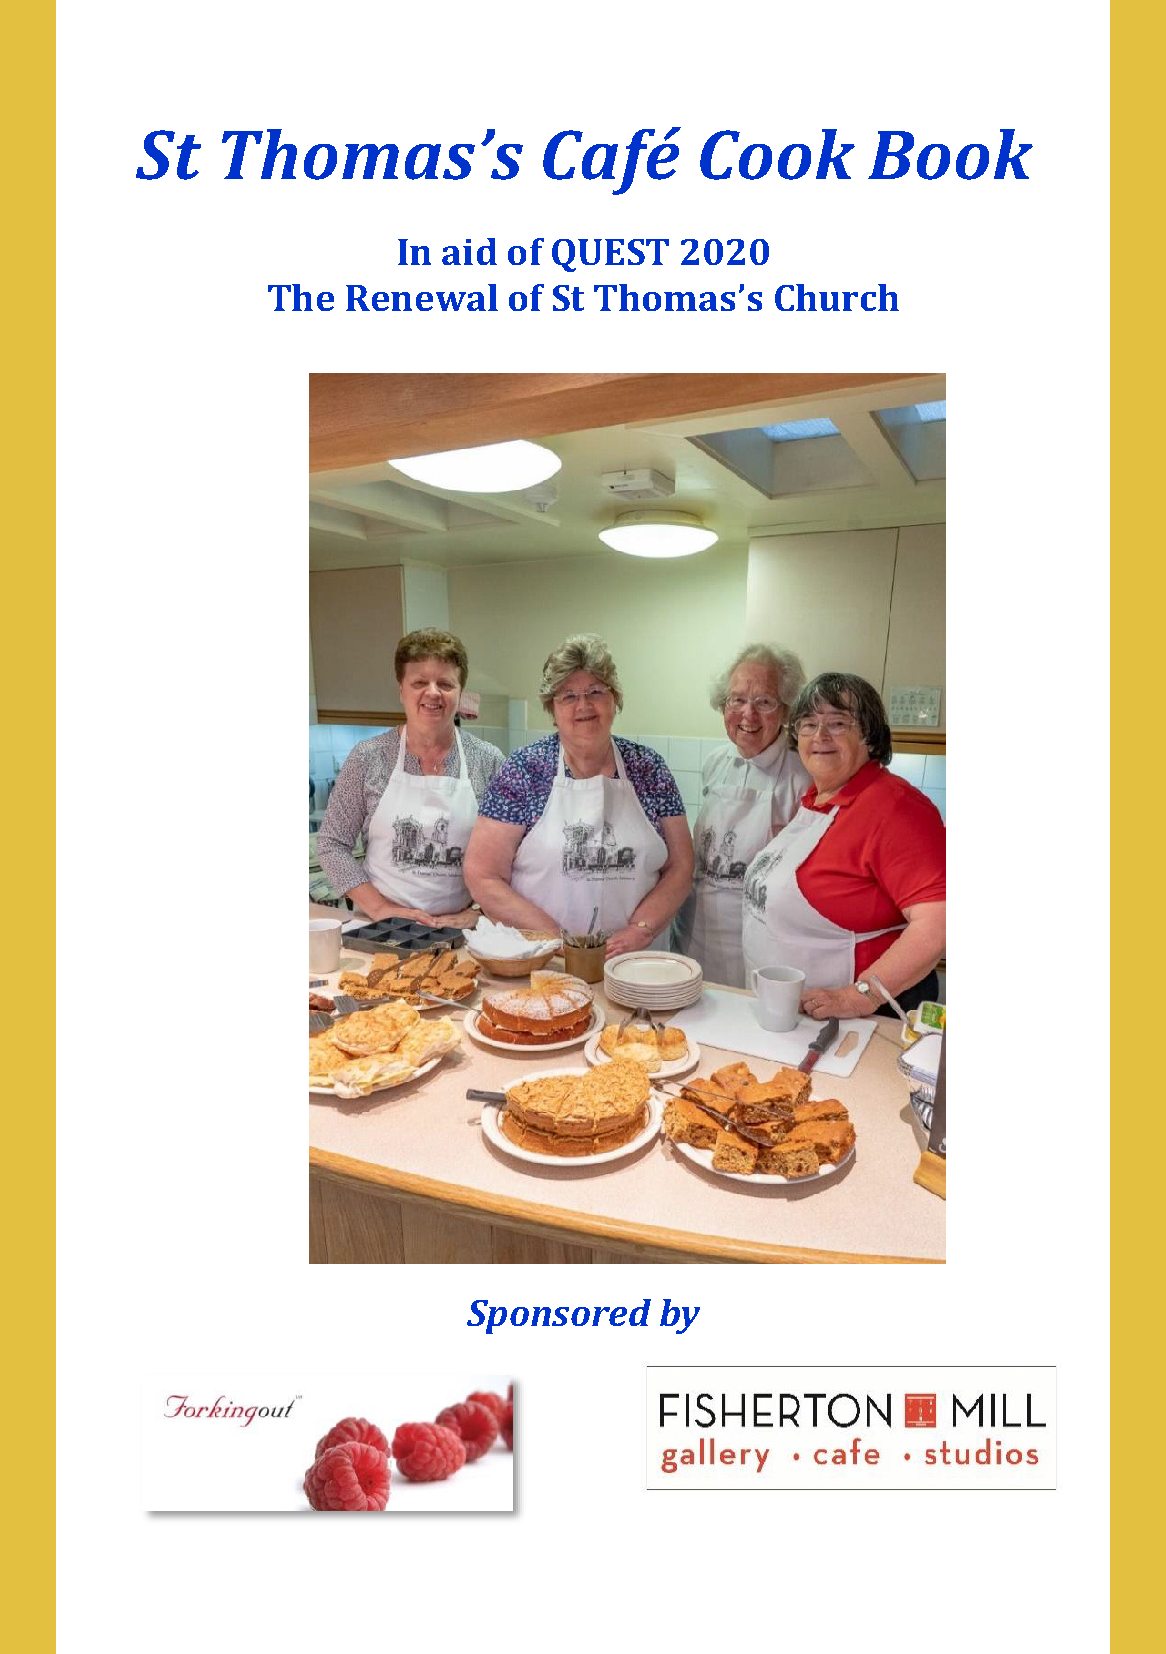 Fisherton Mill has recipes in the St Thomas's cook book - in aid of Quest 2020.